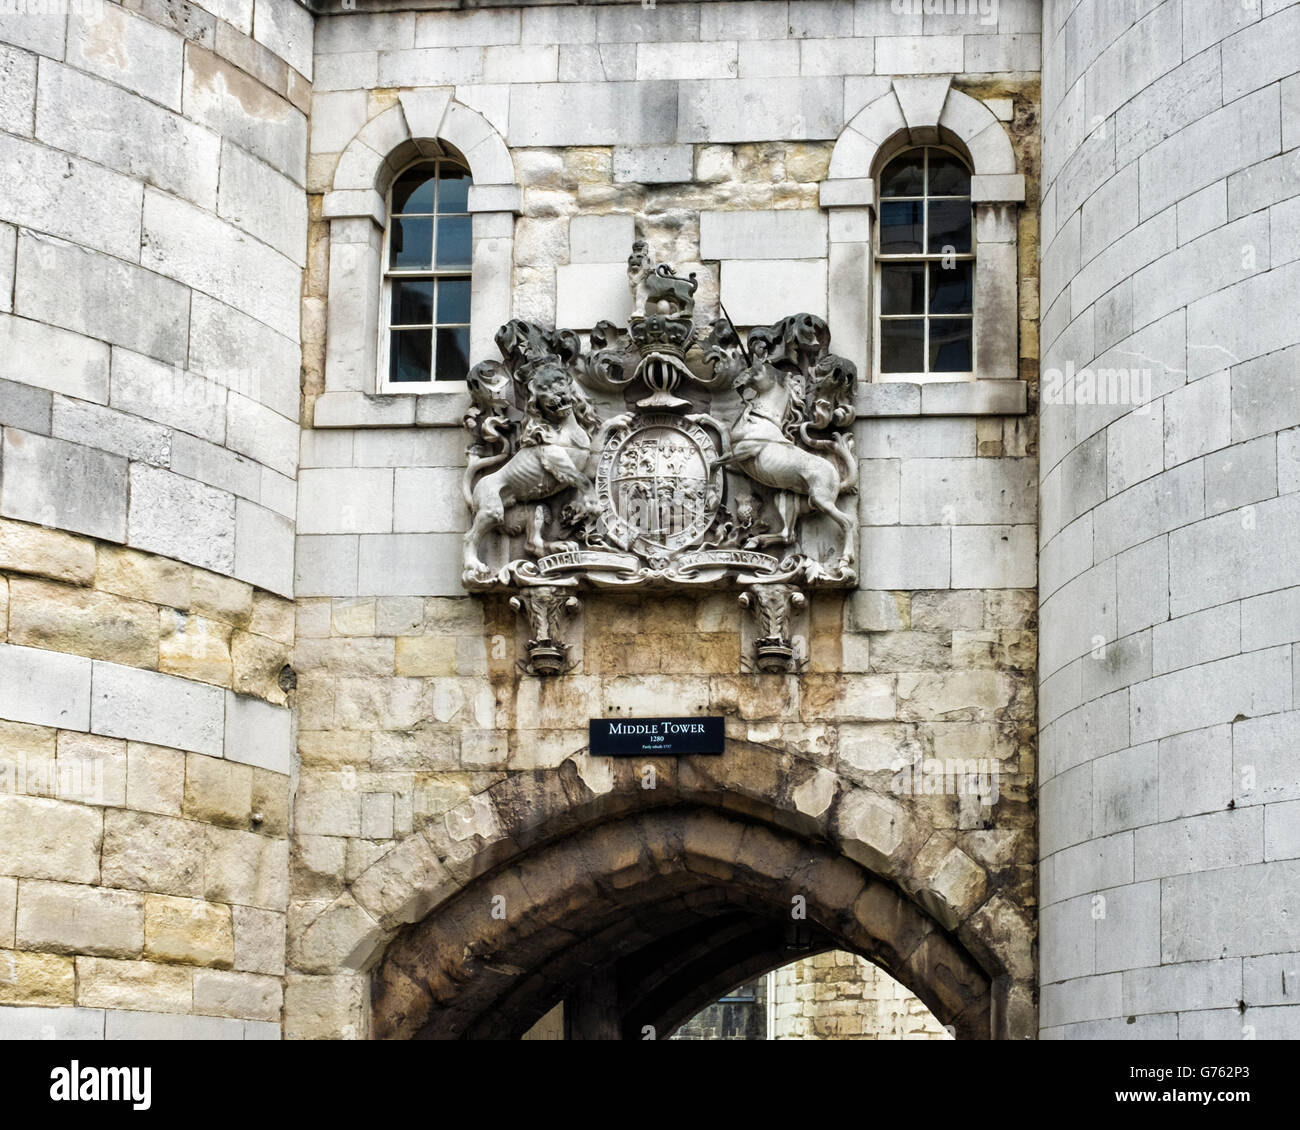 Middle tower of Tower of London. Stone Coat of Arms on historic old castle building, London, UK - Stock Image